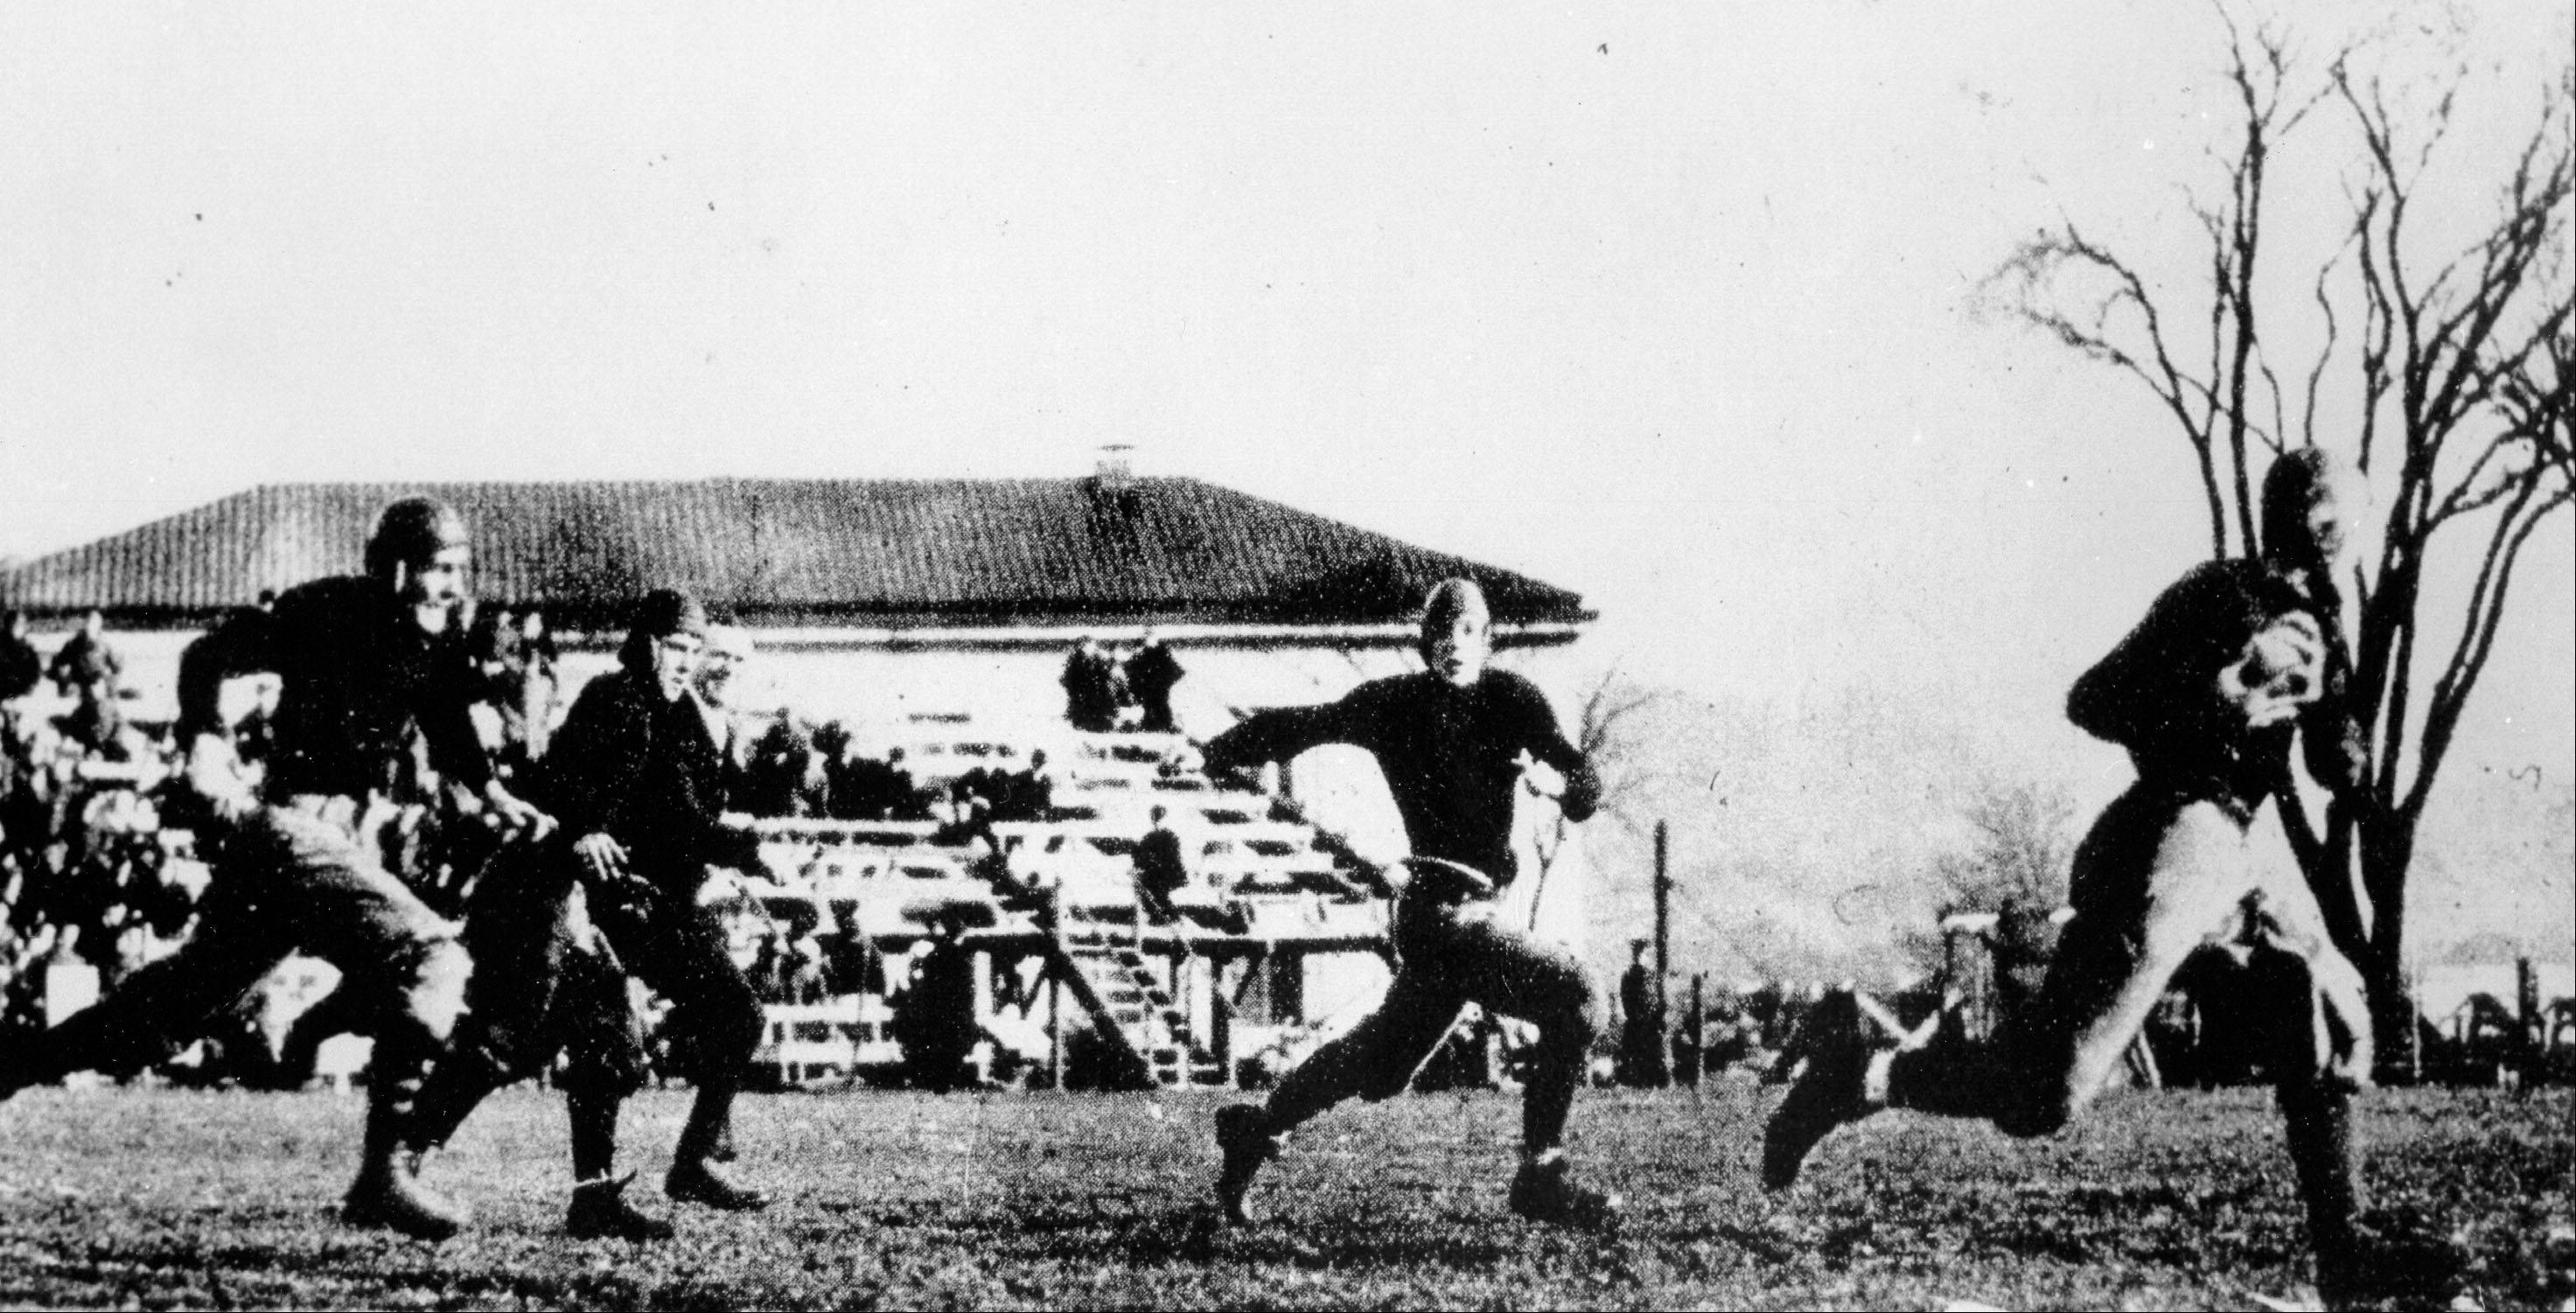 This Nov. 1, 1913, photo released by the University of Notre Dame shows Knute Rockne, right, making a touchdown against Army after catching a forward pass in West Point, N.Y.